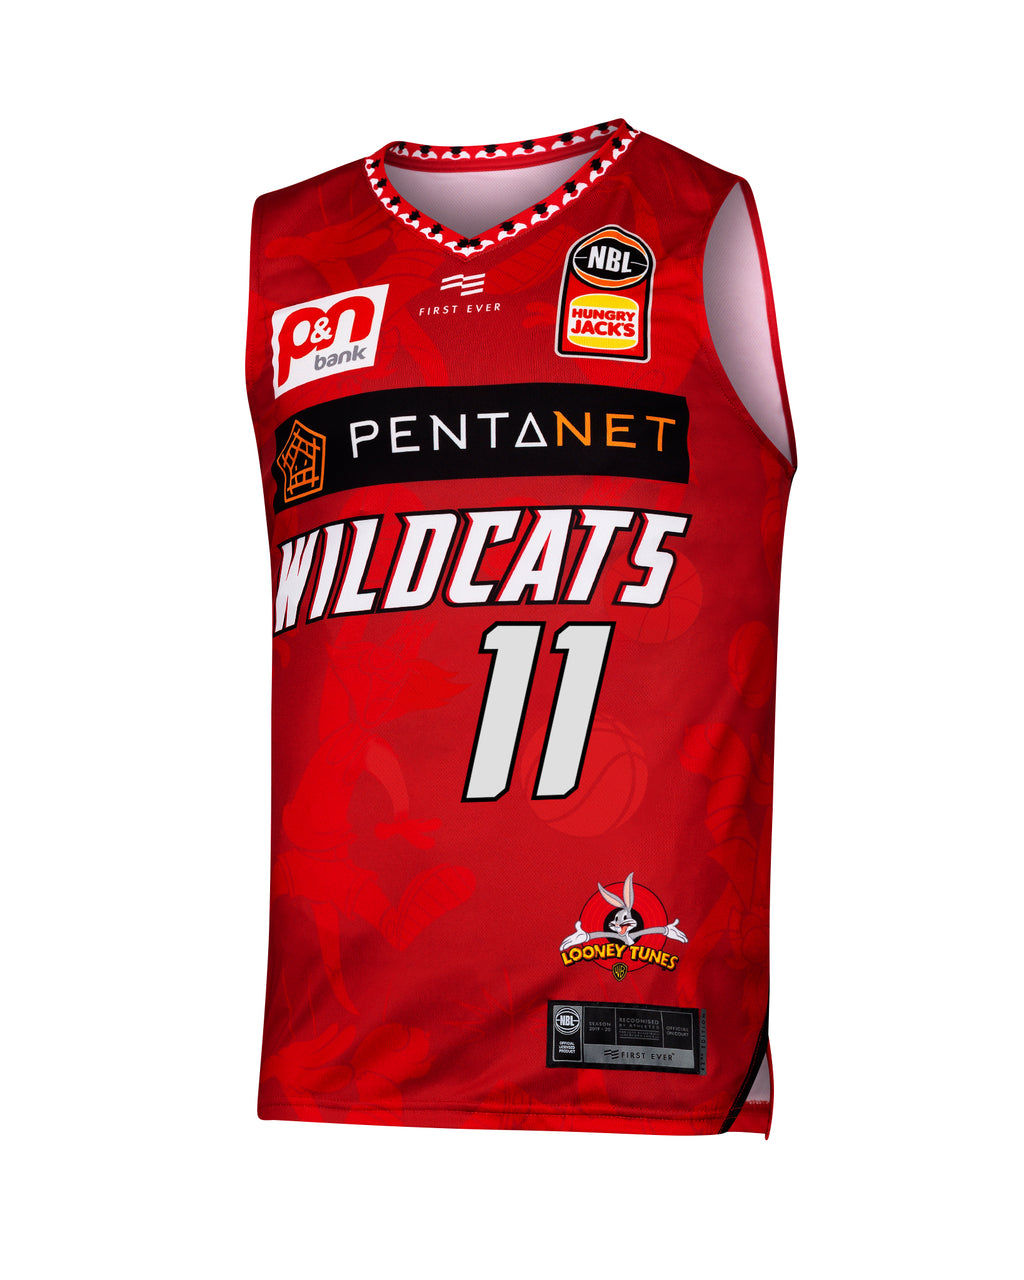 Perth Wildcats 19/20 Looney Tunes Jersey - Bryce Cotton